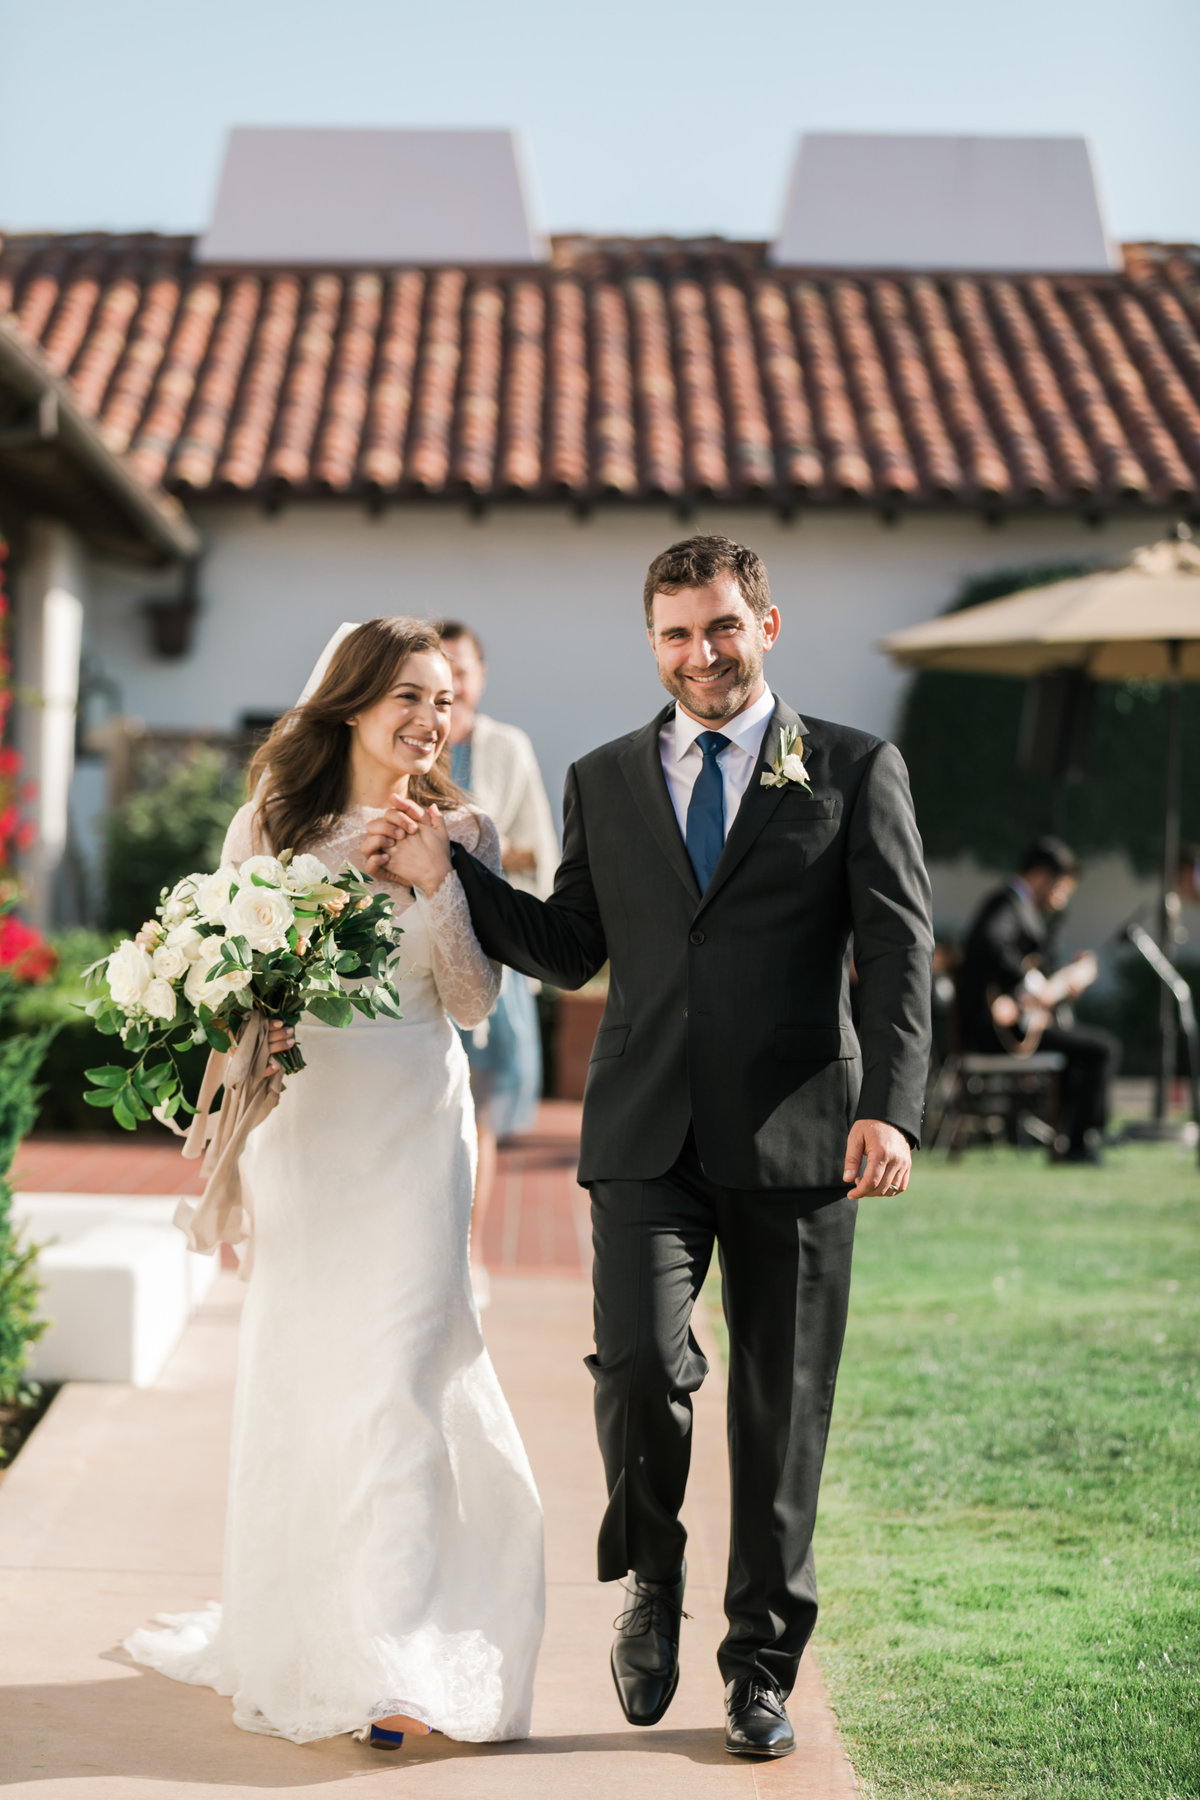 Carmel_Seaside_Chic_Wedding_Valorie_Darling_Photography - 91 of 134